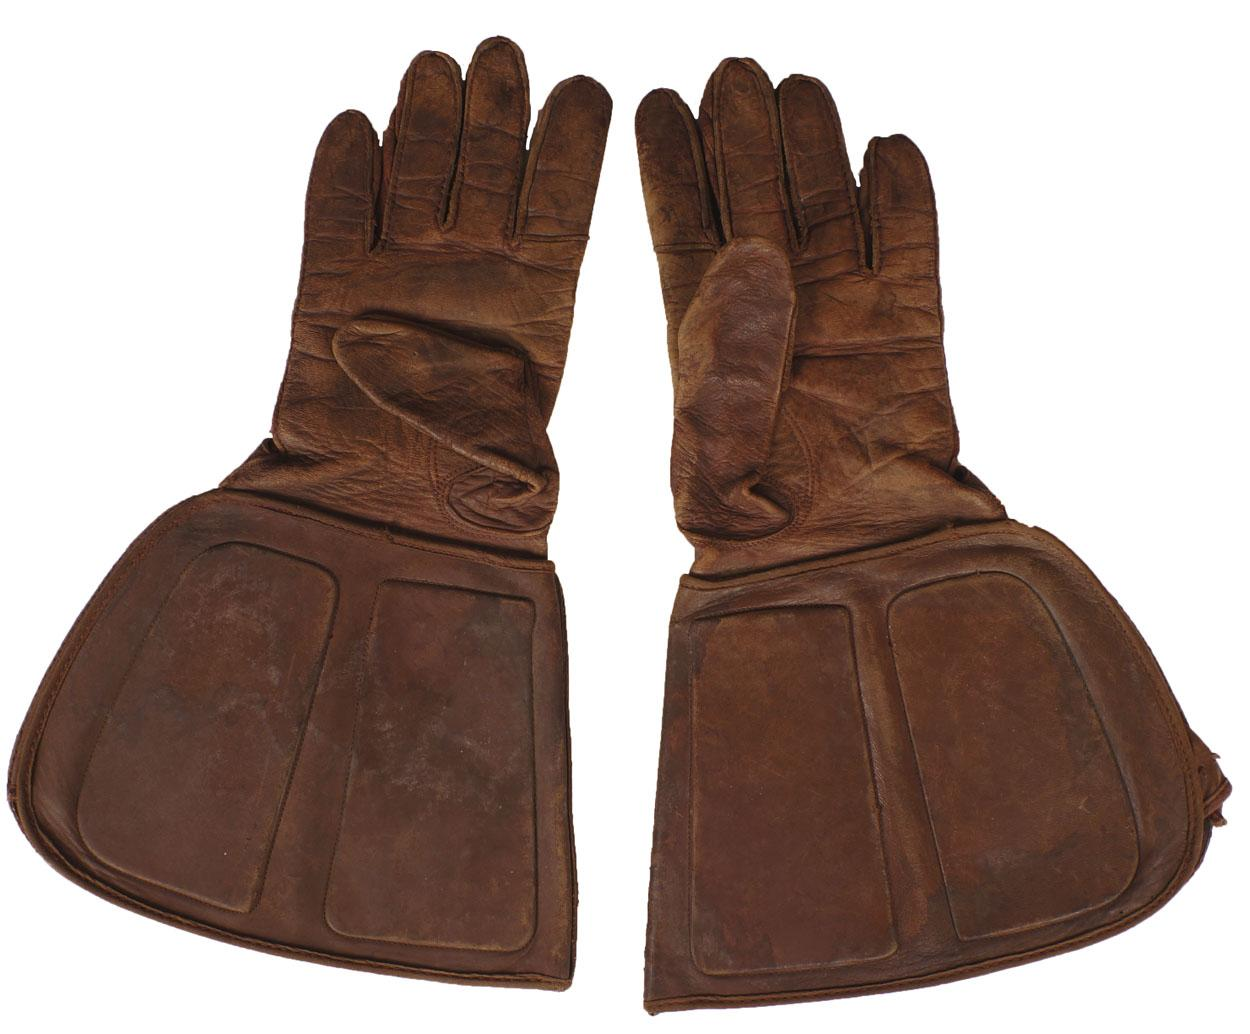 Motorcycle gloves large - Roll Over Large Image To Magnify Click Large Image To Zoom